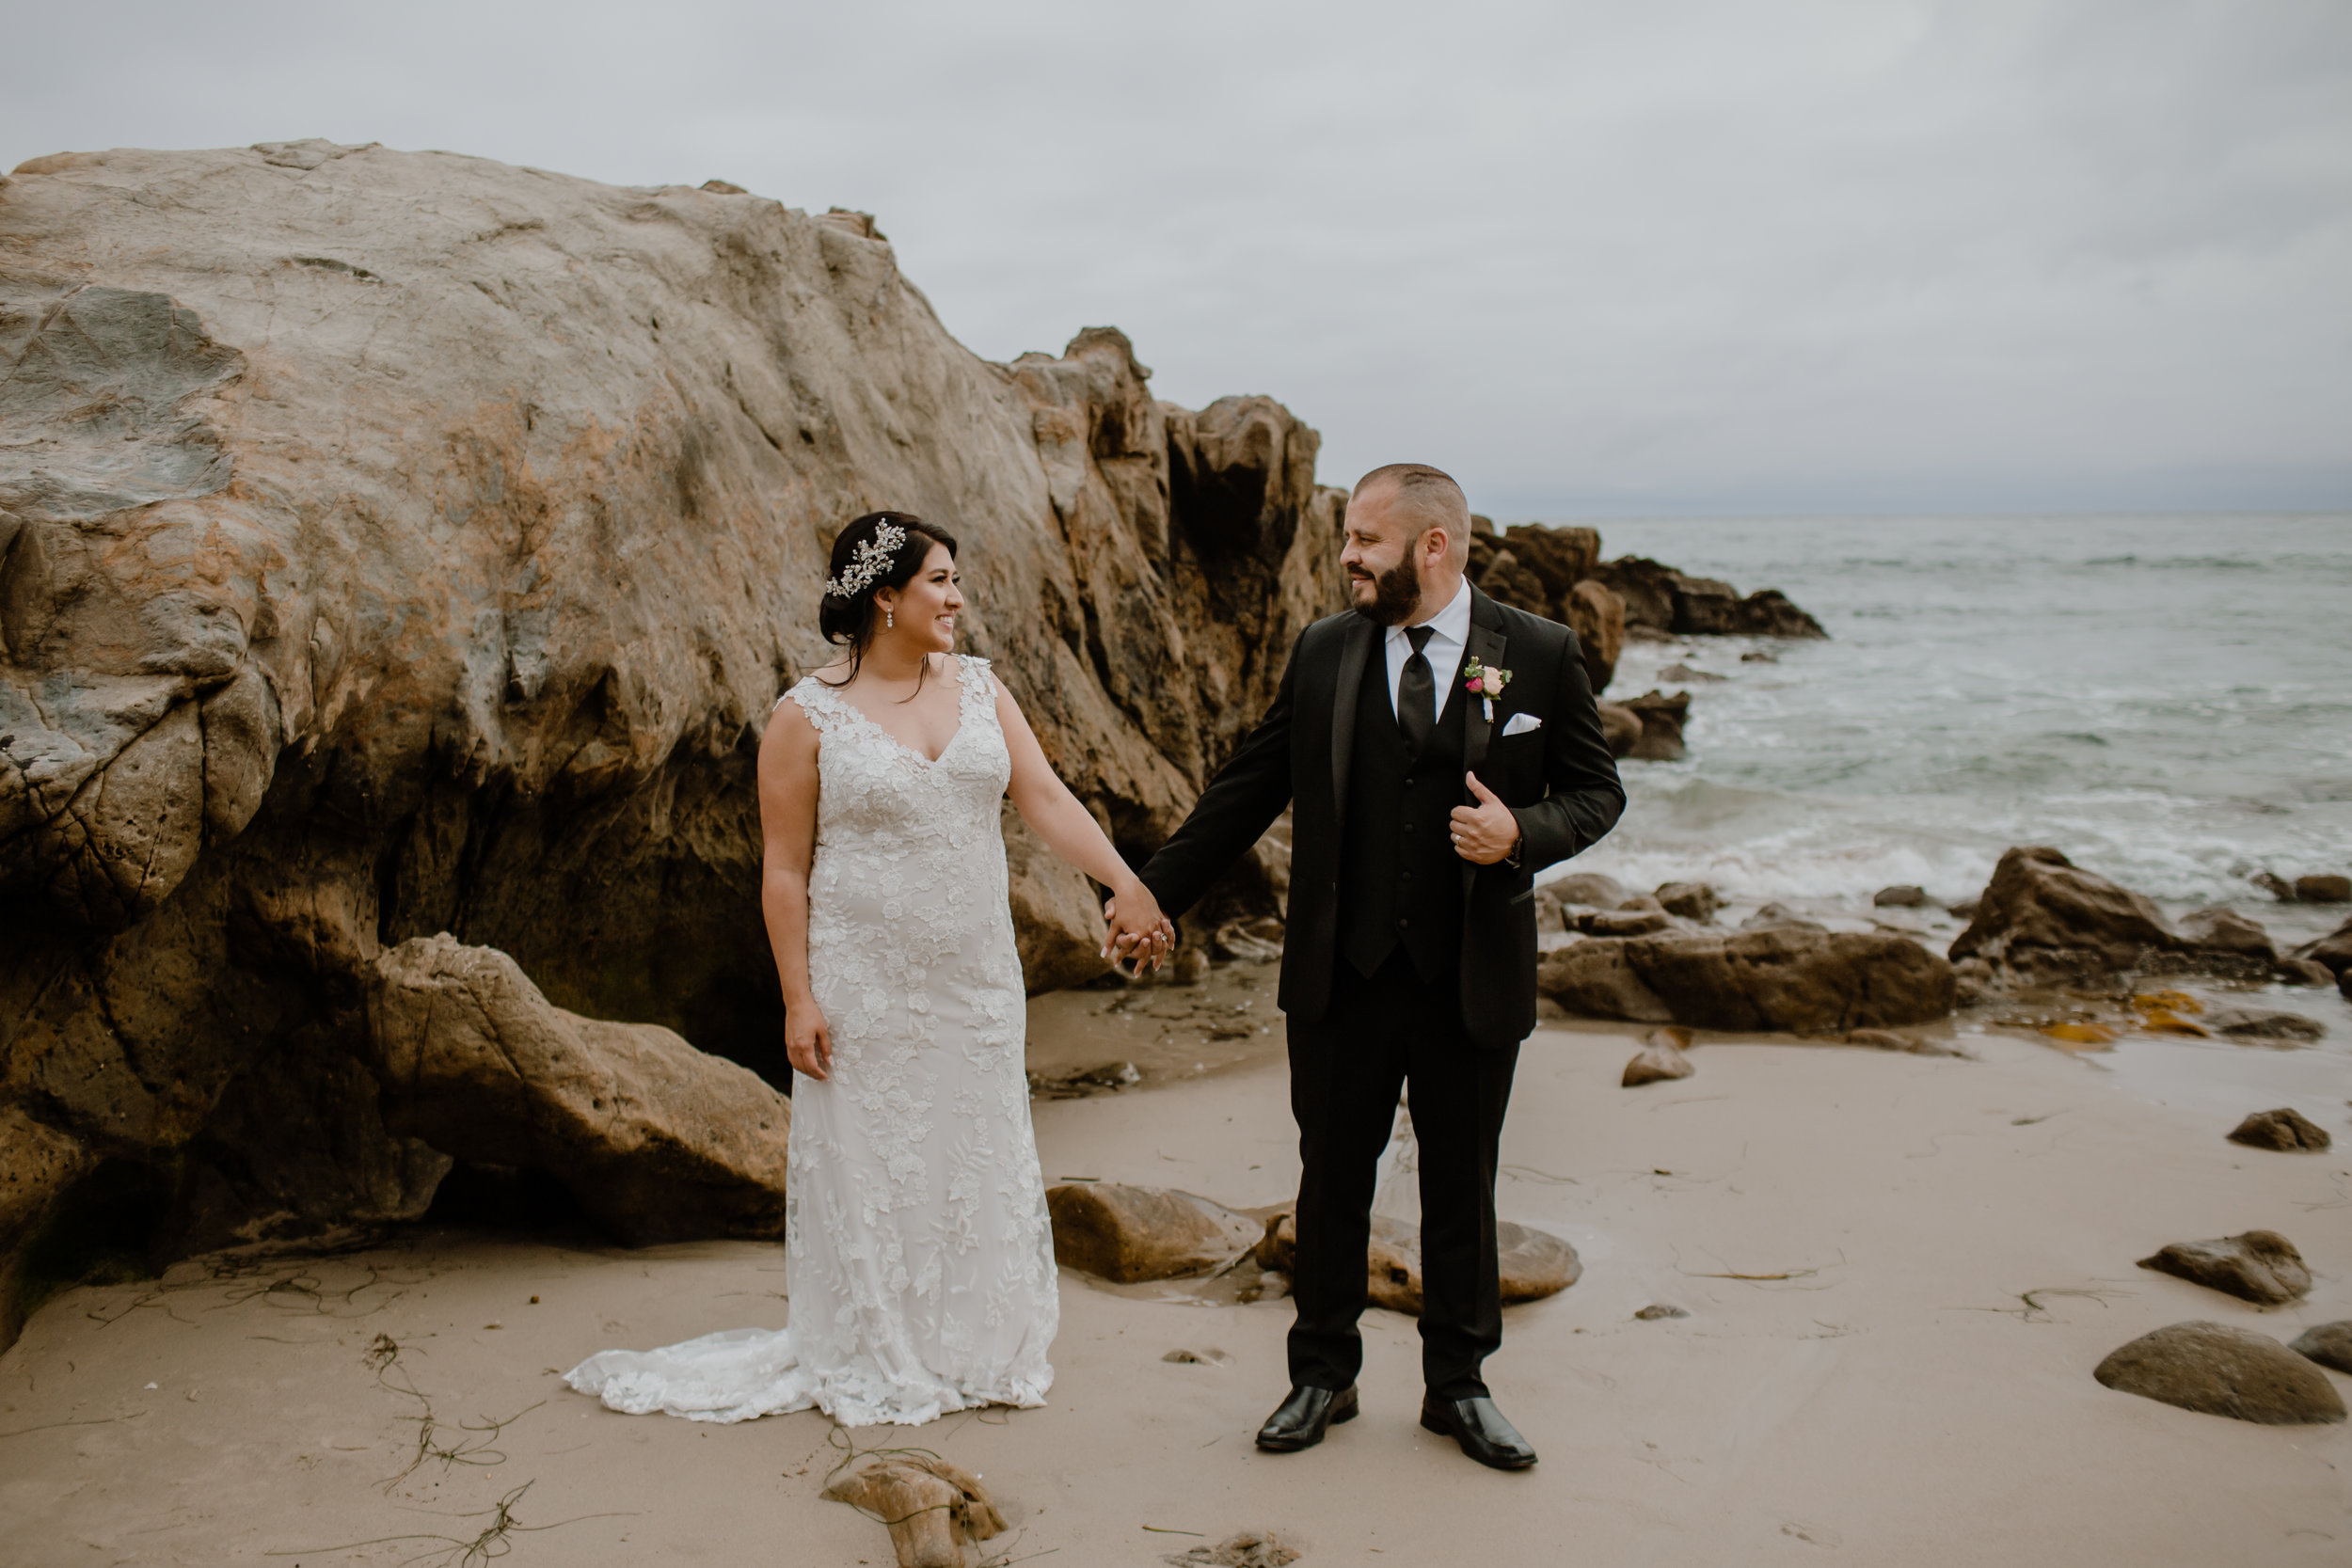 Julia and David - Laguna Beach Intimate Wedding - Eve Rox Photography-52.jpg